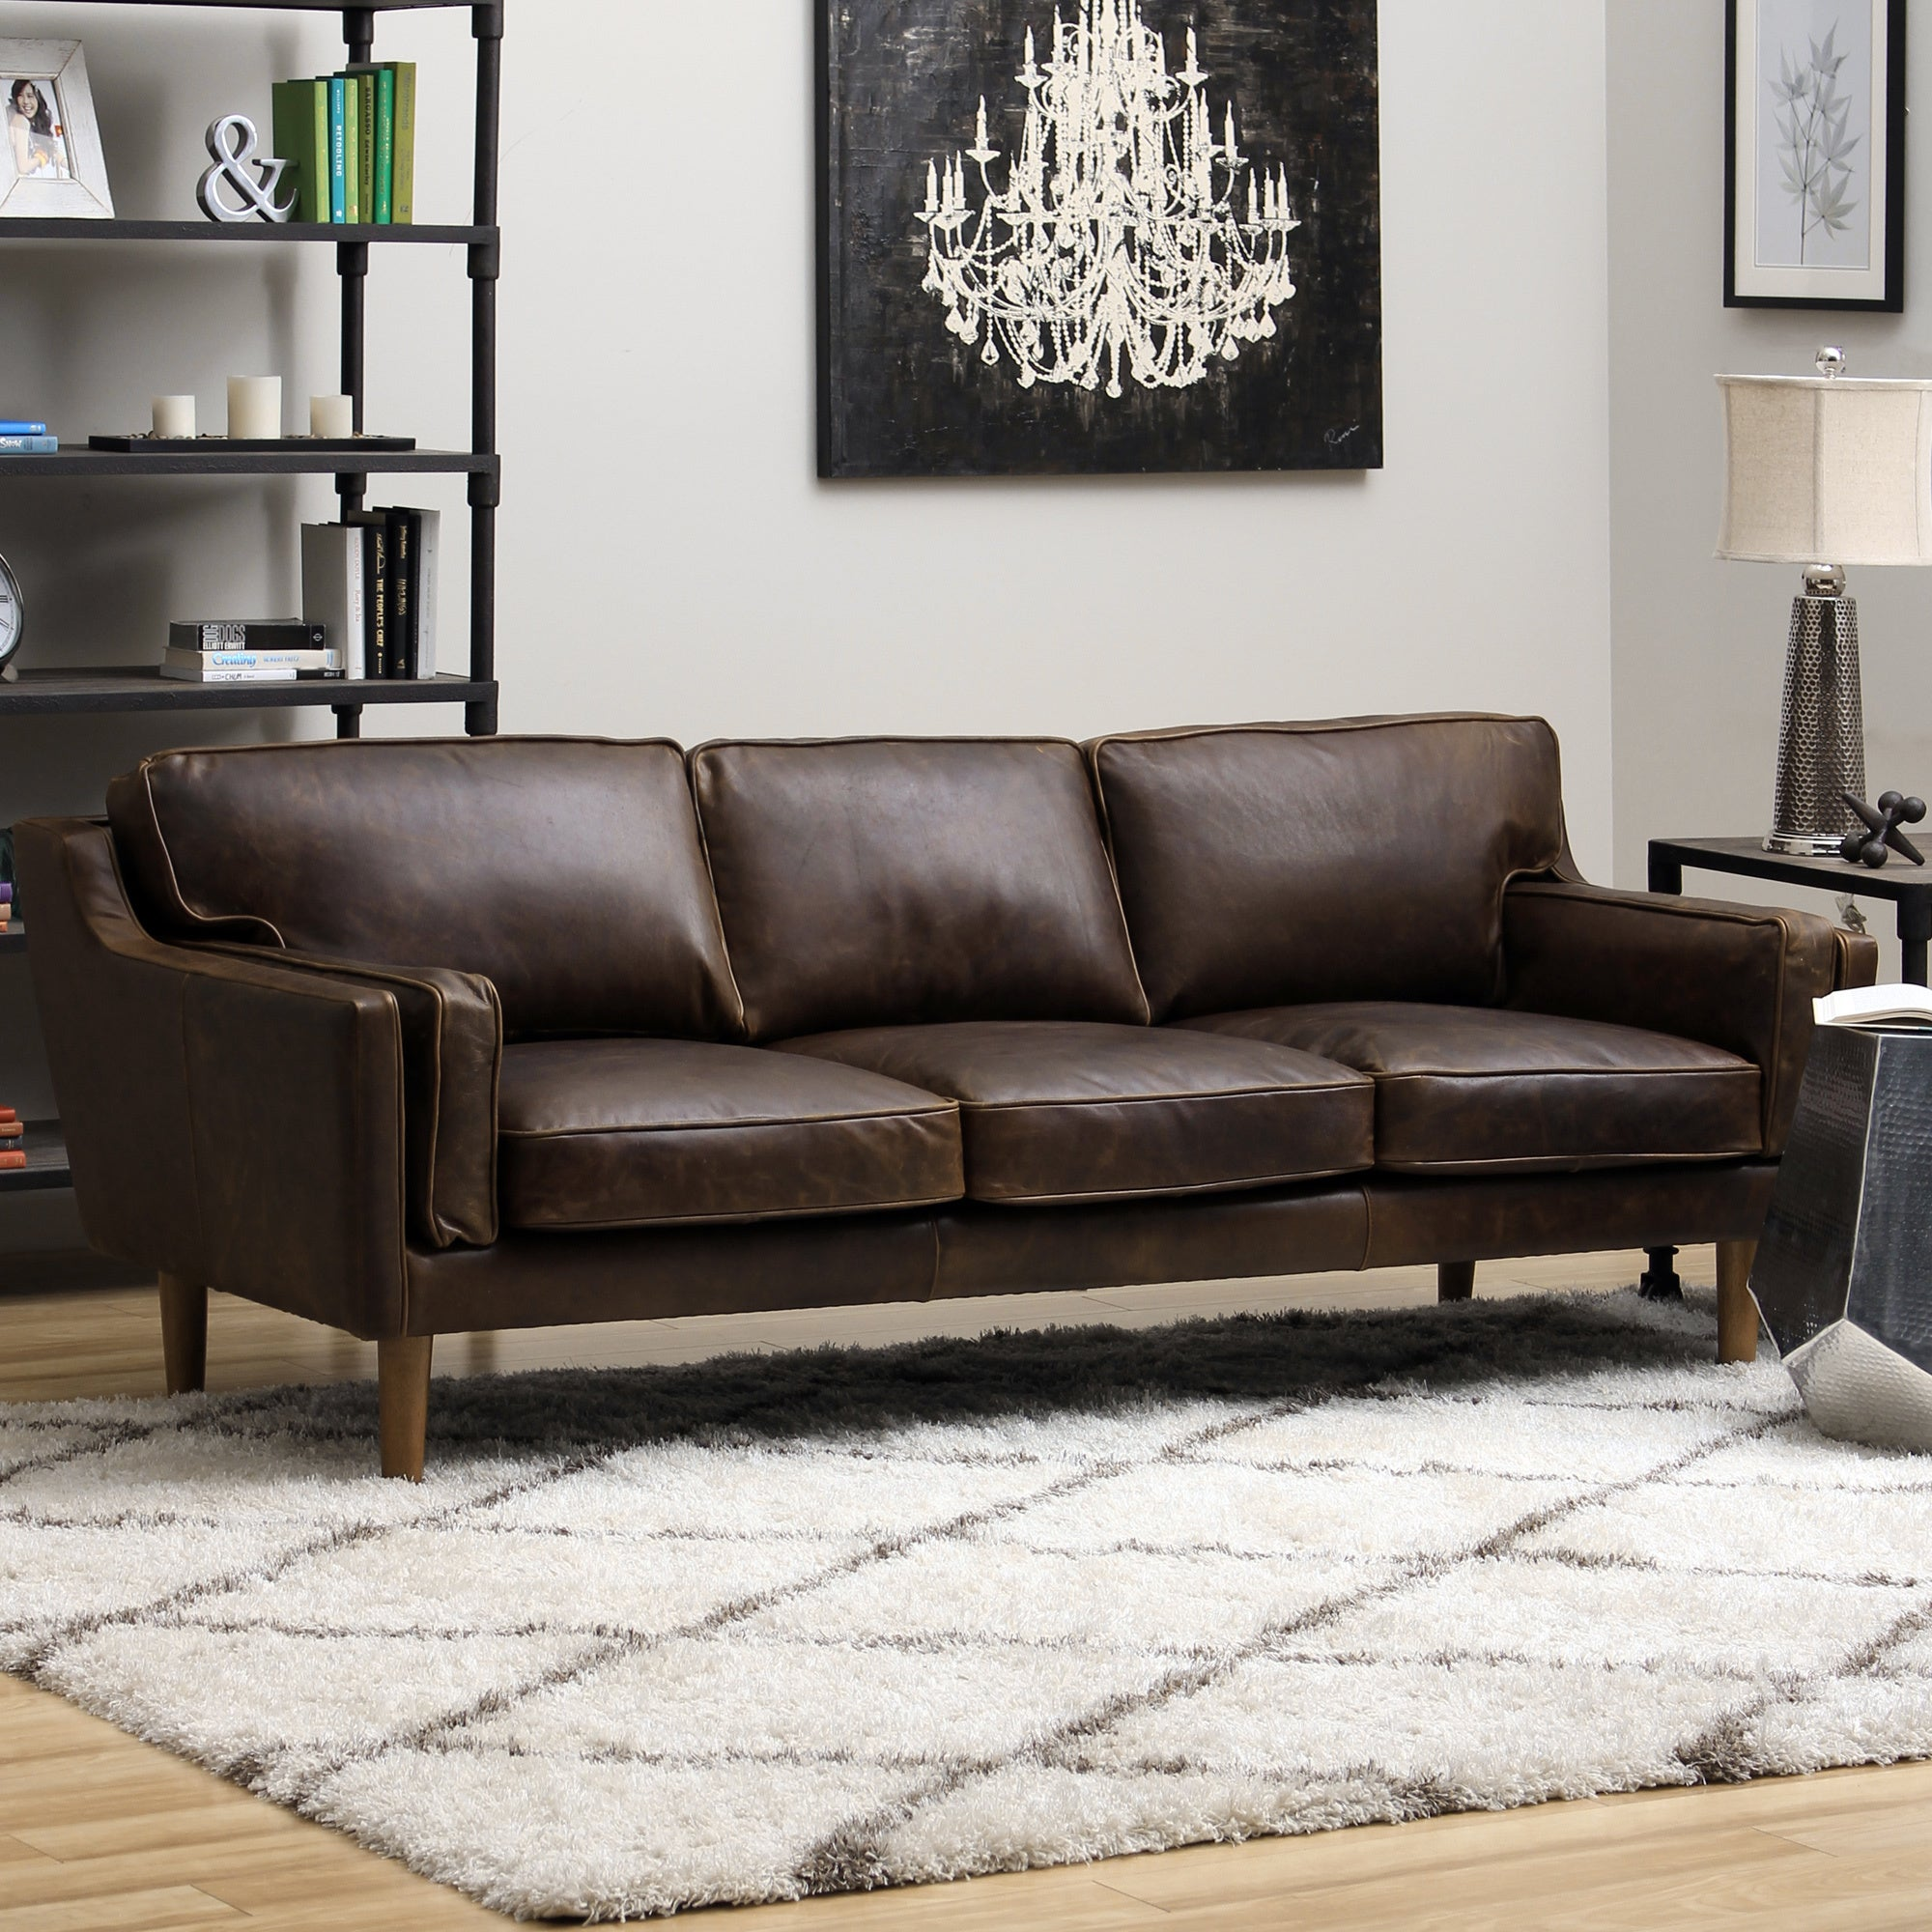 1cheap Beatnik Leather Sofa Columbus Chocolate Cheap